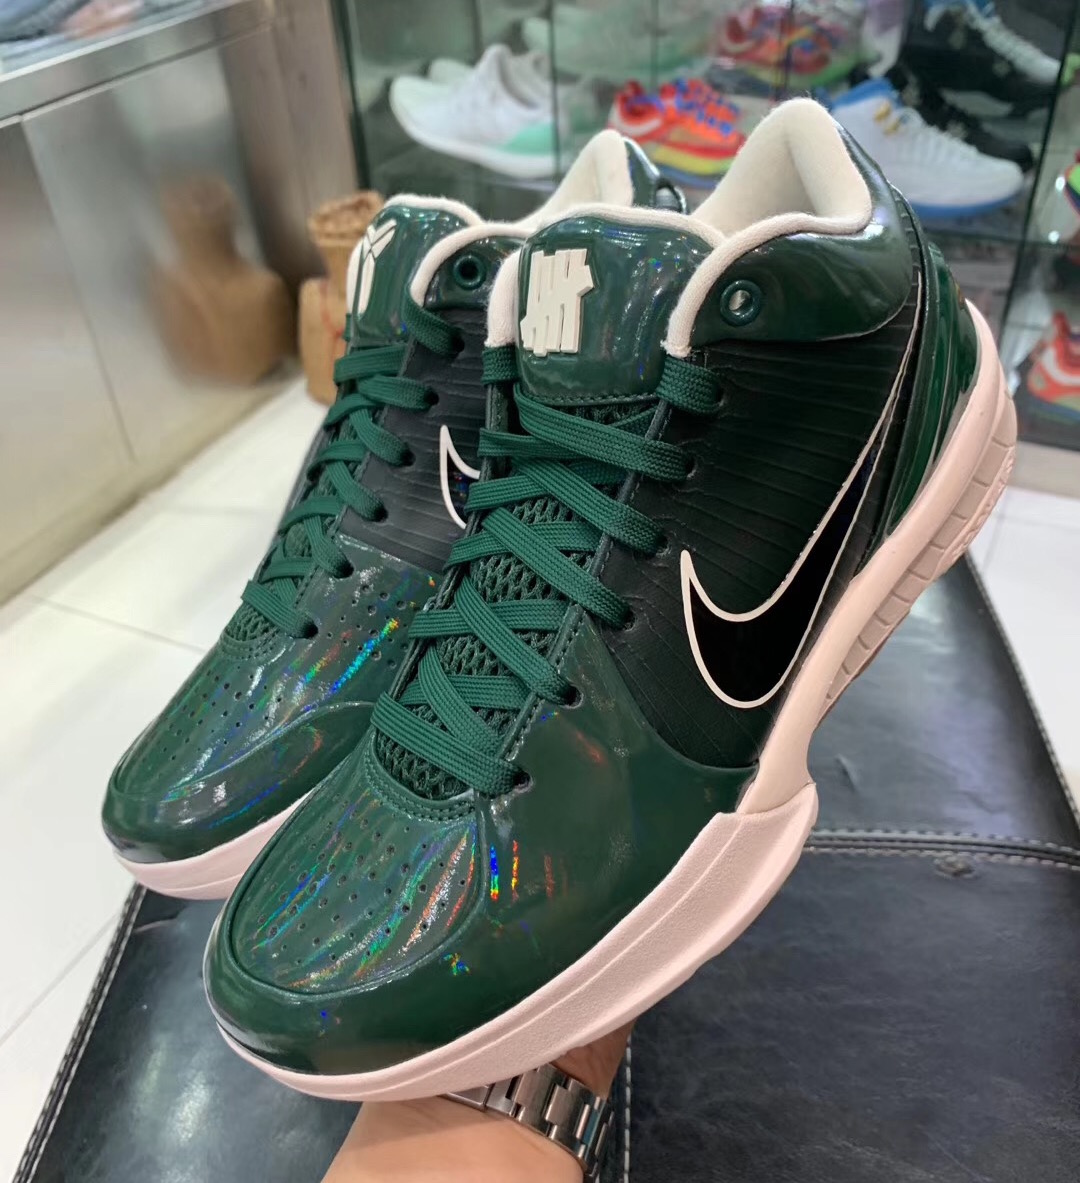 Undefeated Nike Kobe 4 Protro Fir Green CQ3869-301 Release Date